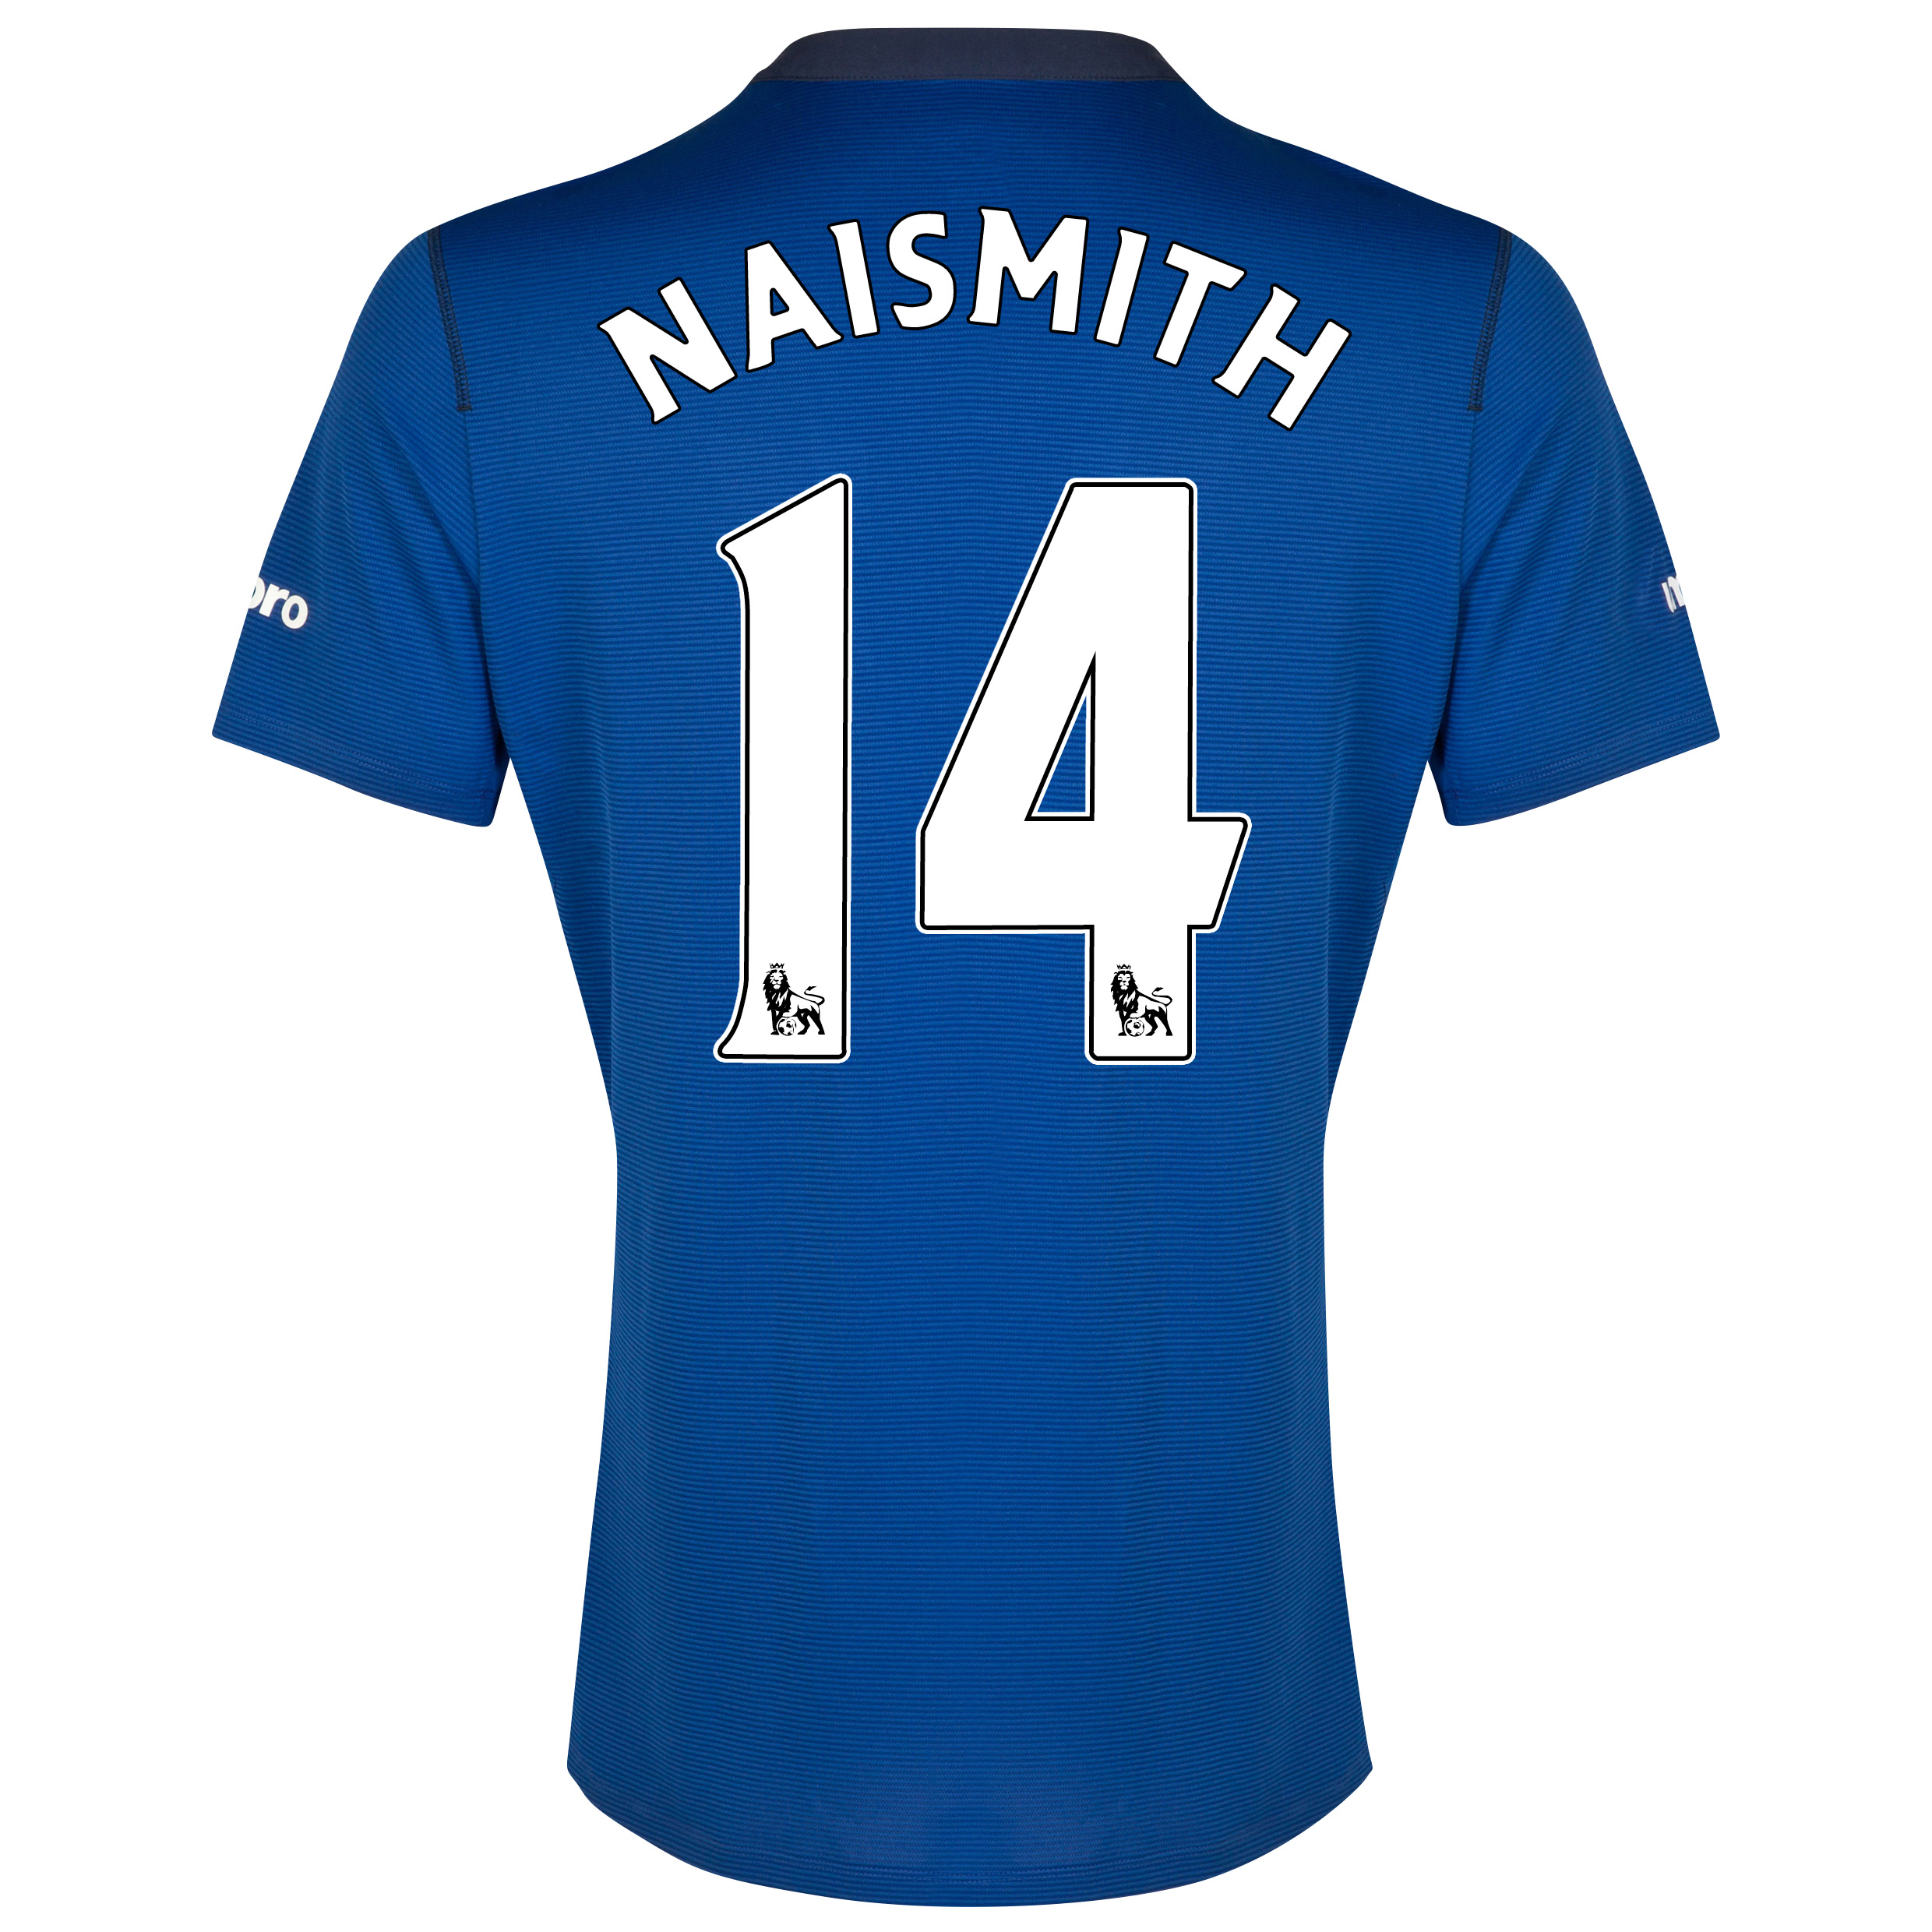 Everton SS Home Shirt 2014/15 - Junior with Naismith 14 printing